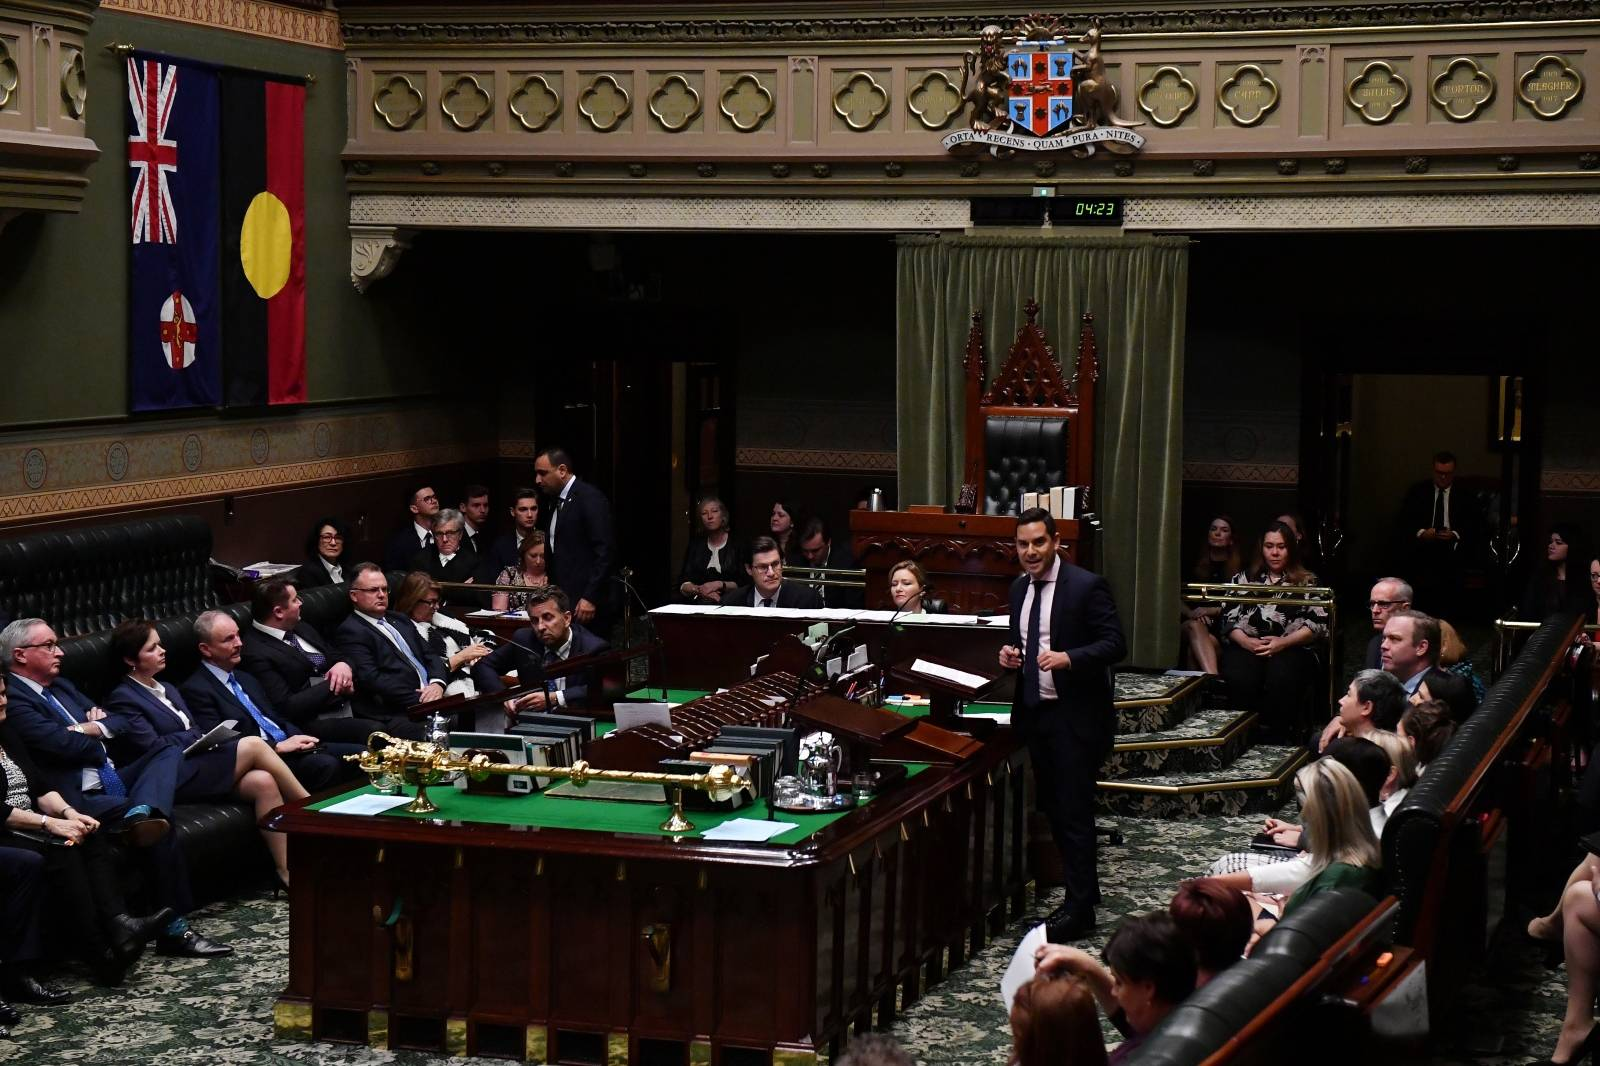 Independent MP Alex Greenwich speaks during the passing of the amended Abortion Law Reform Act, which was passed in the Legislative Assembly in State Parliament, in Sydney